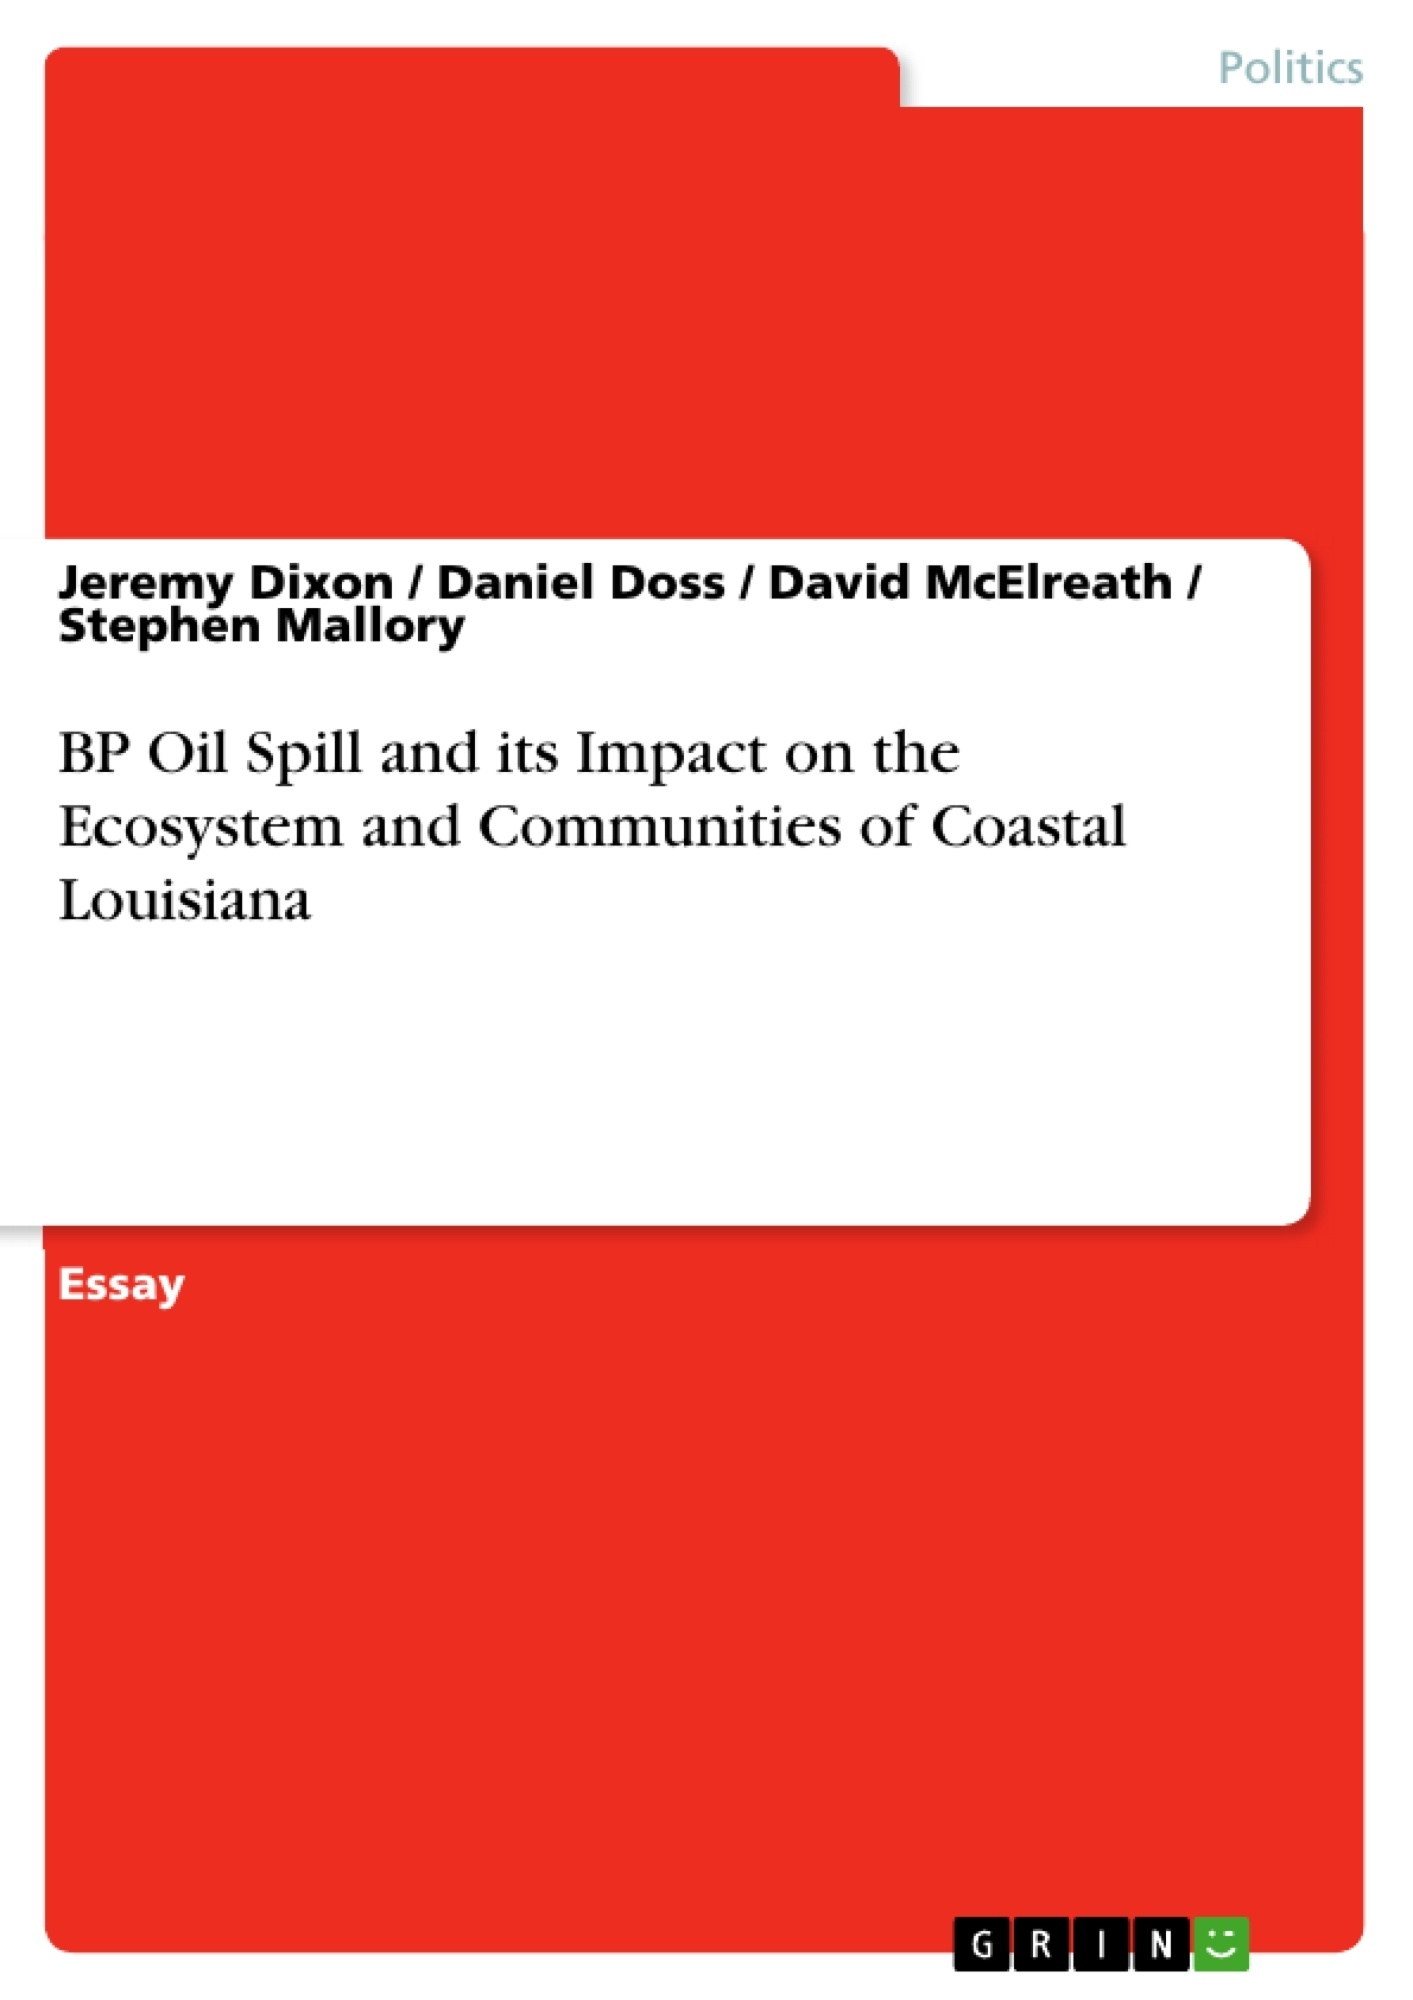 Bp Oil Spill And Its Impact On The Ecosystem And Communities Of  Upload Your Own Papers Earn Money And Win An Iphone X Ghost Writing Services Rates also Buy Unique Articles Cheap  A Modest Proposal Essay Topics